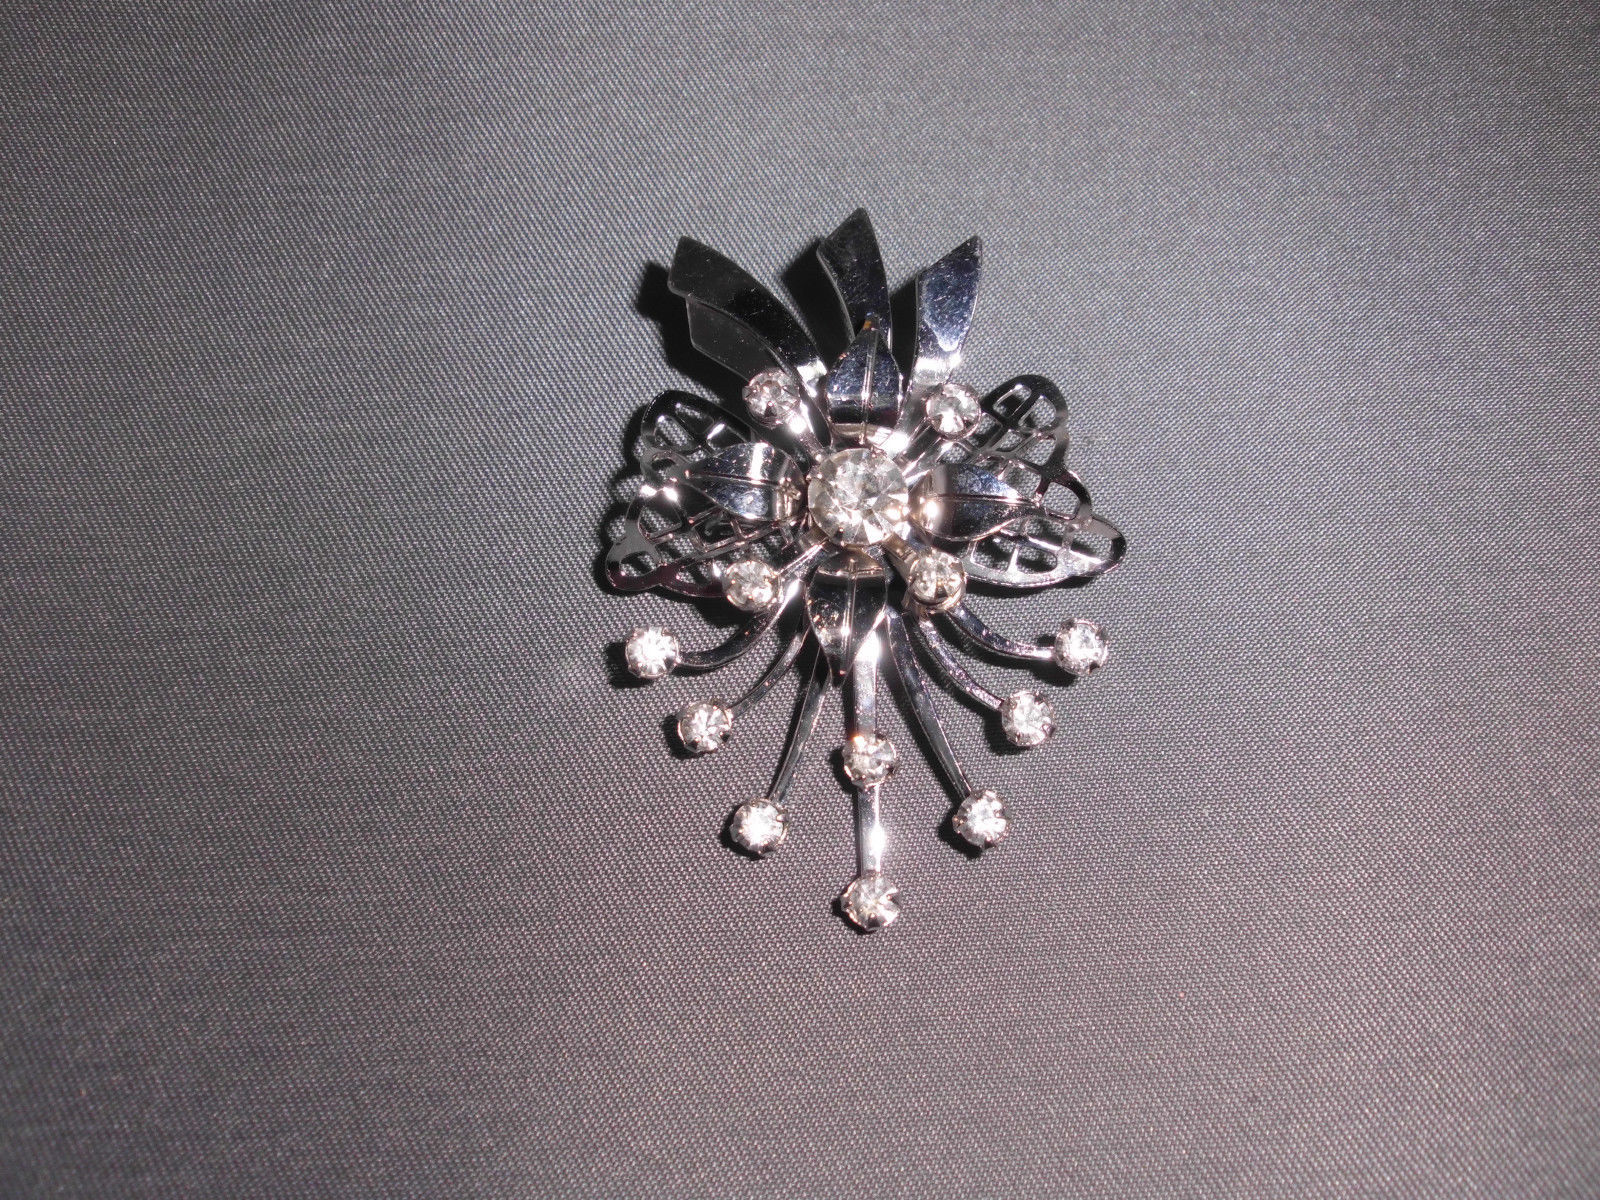 VTG Silver Tone Clear Rhinestone Cubic Zirconia Bouquet Pendant & Pin Brooch image 1